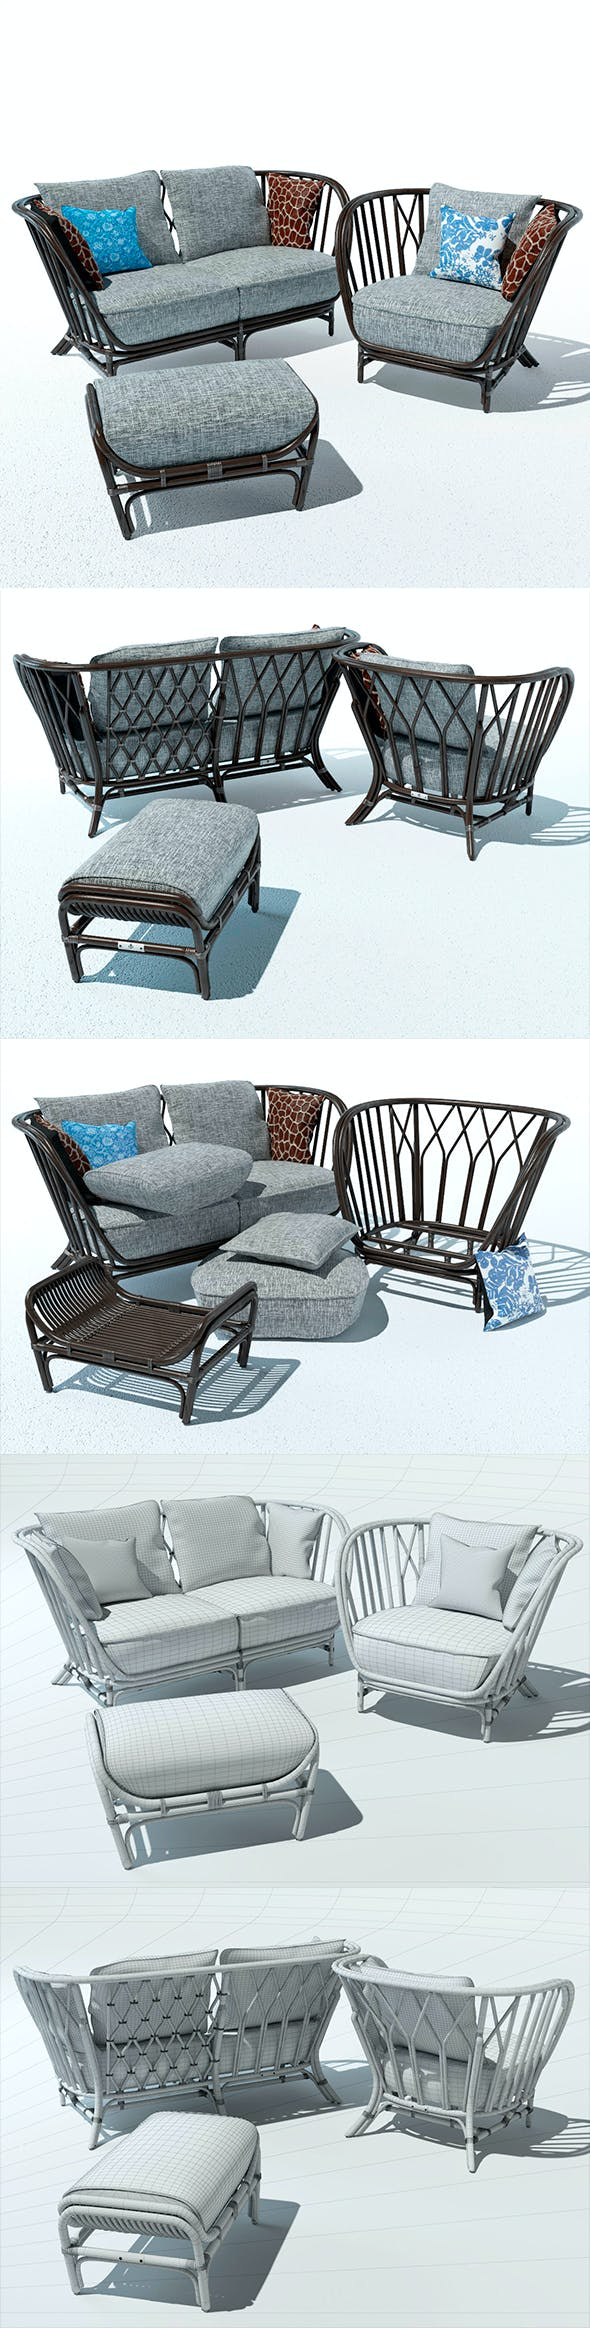 Furniture for the terrace. Kyoto collection - 3DOcean Item for Sale